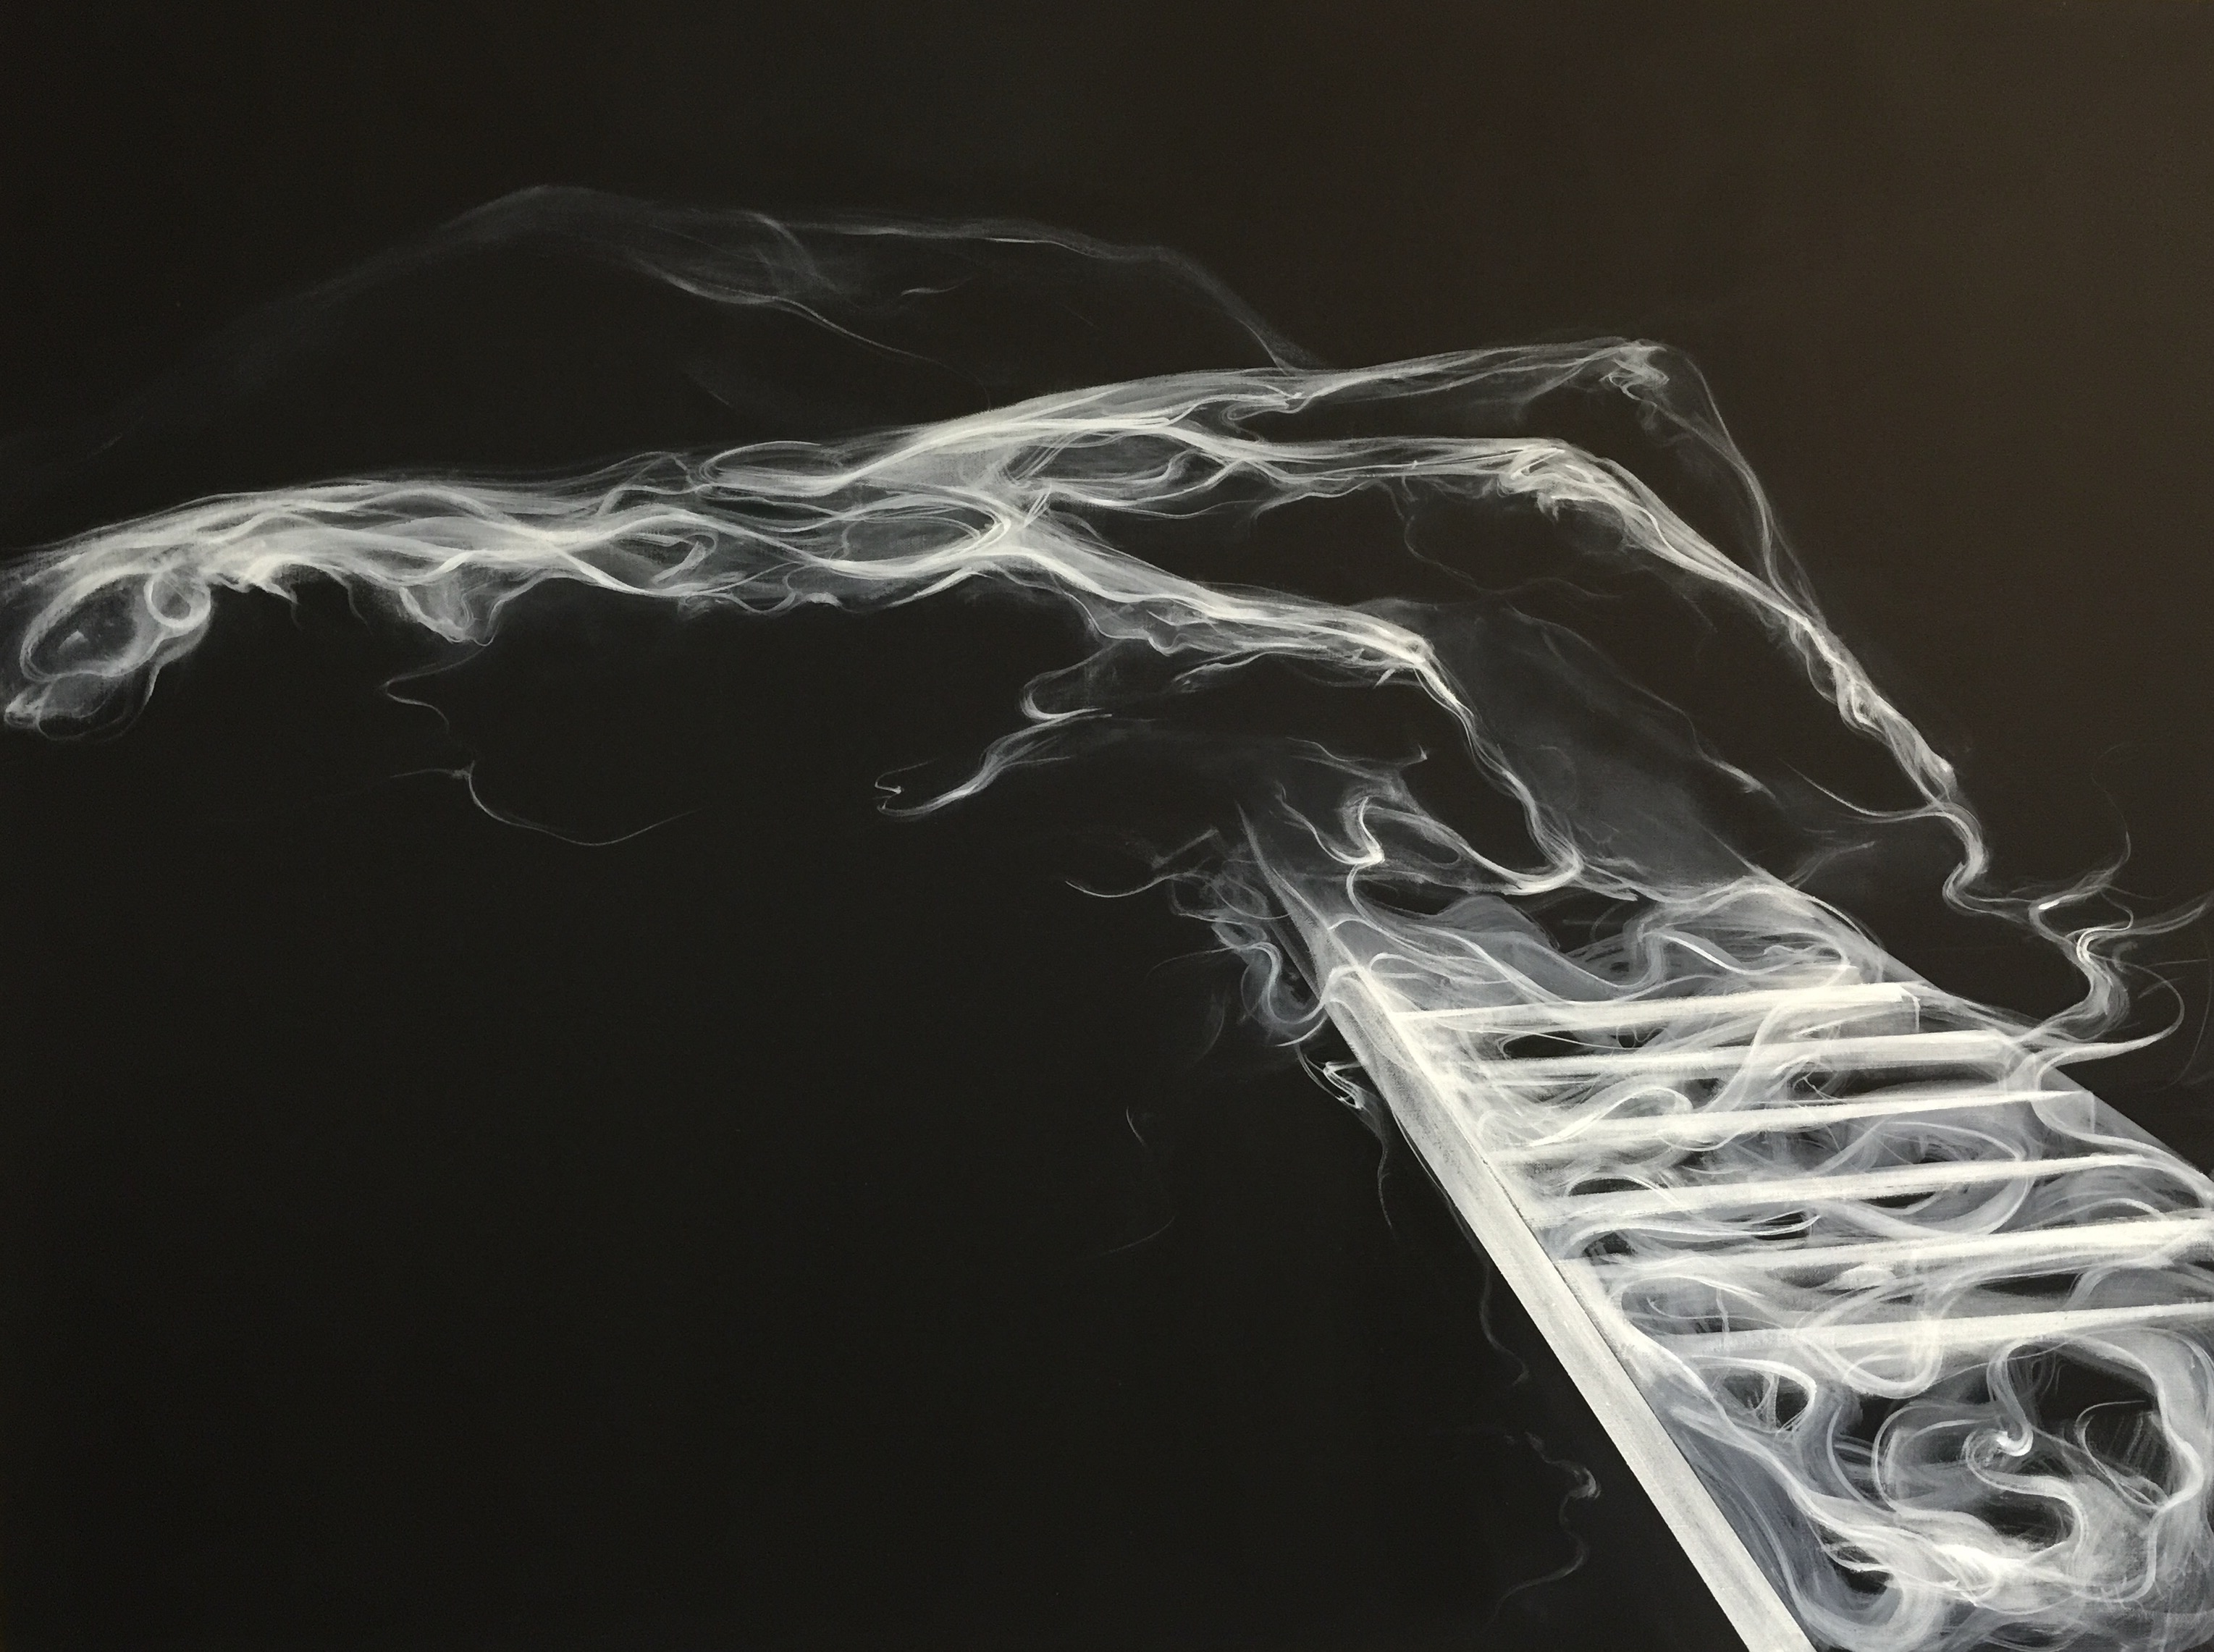 Piano and Smoke- Mher Khachatryan